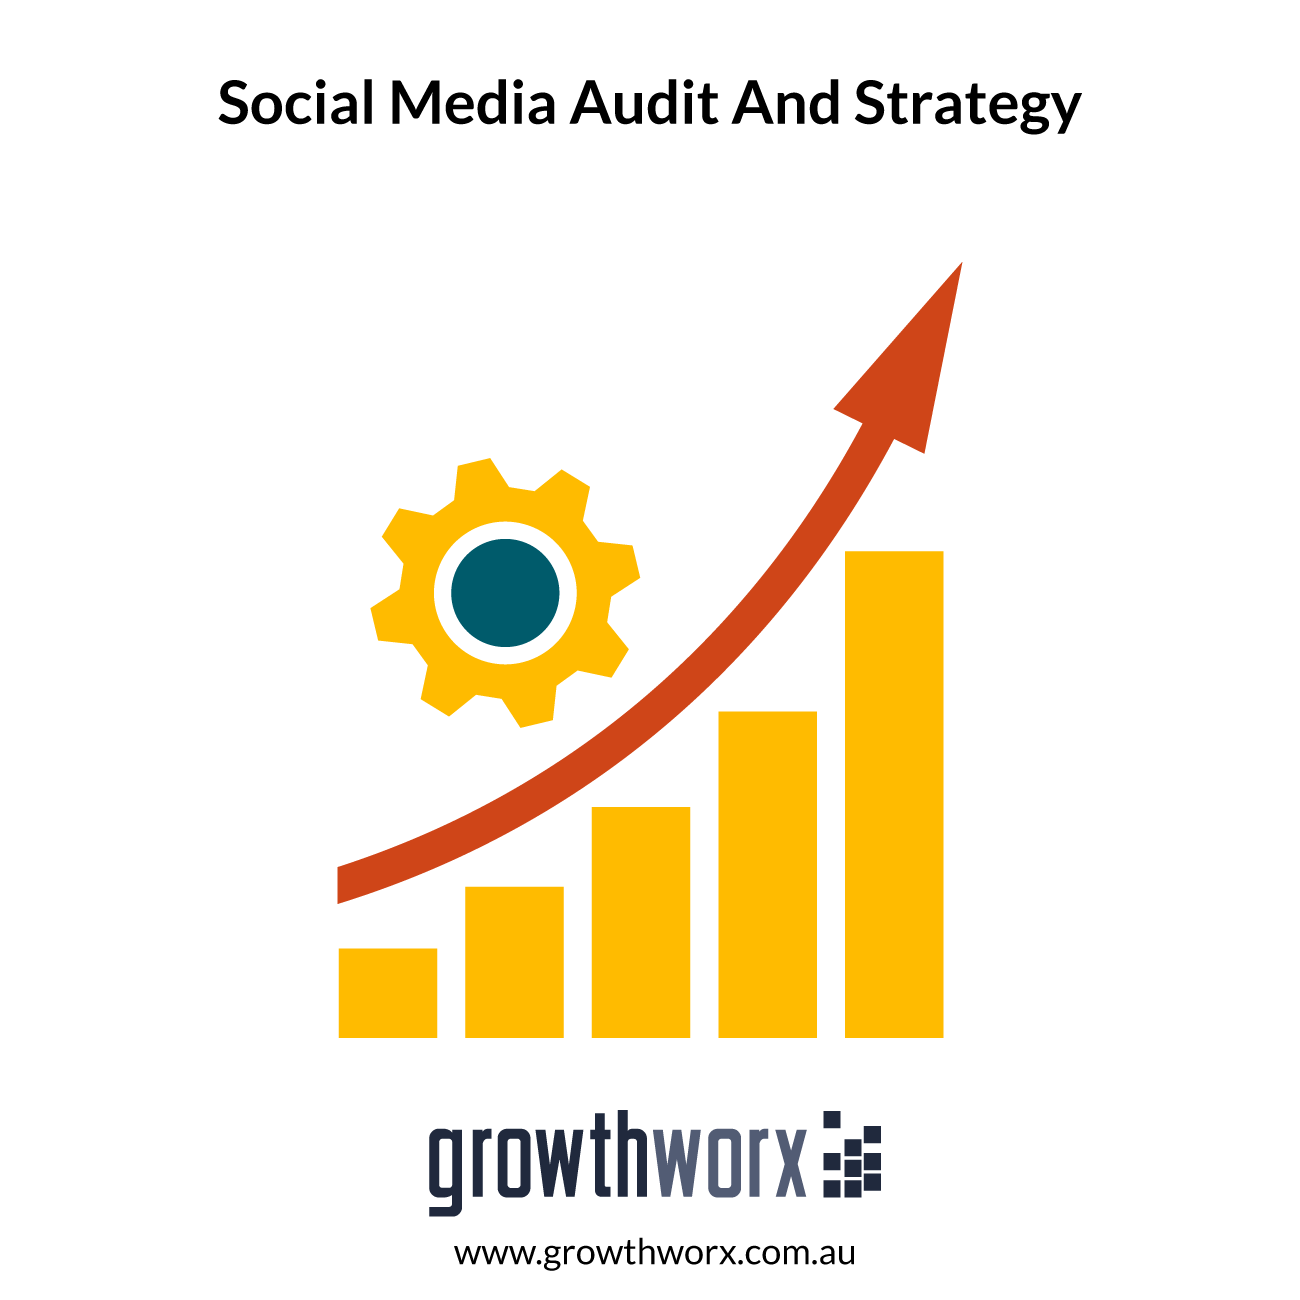 Do a social media audit and create a social media strategy and plan for your brand or business 1